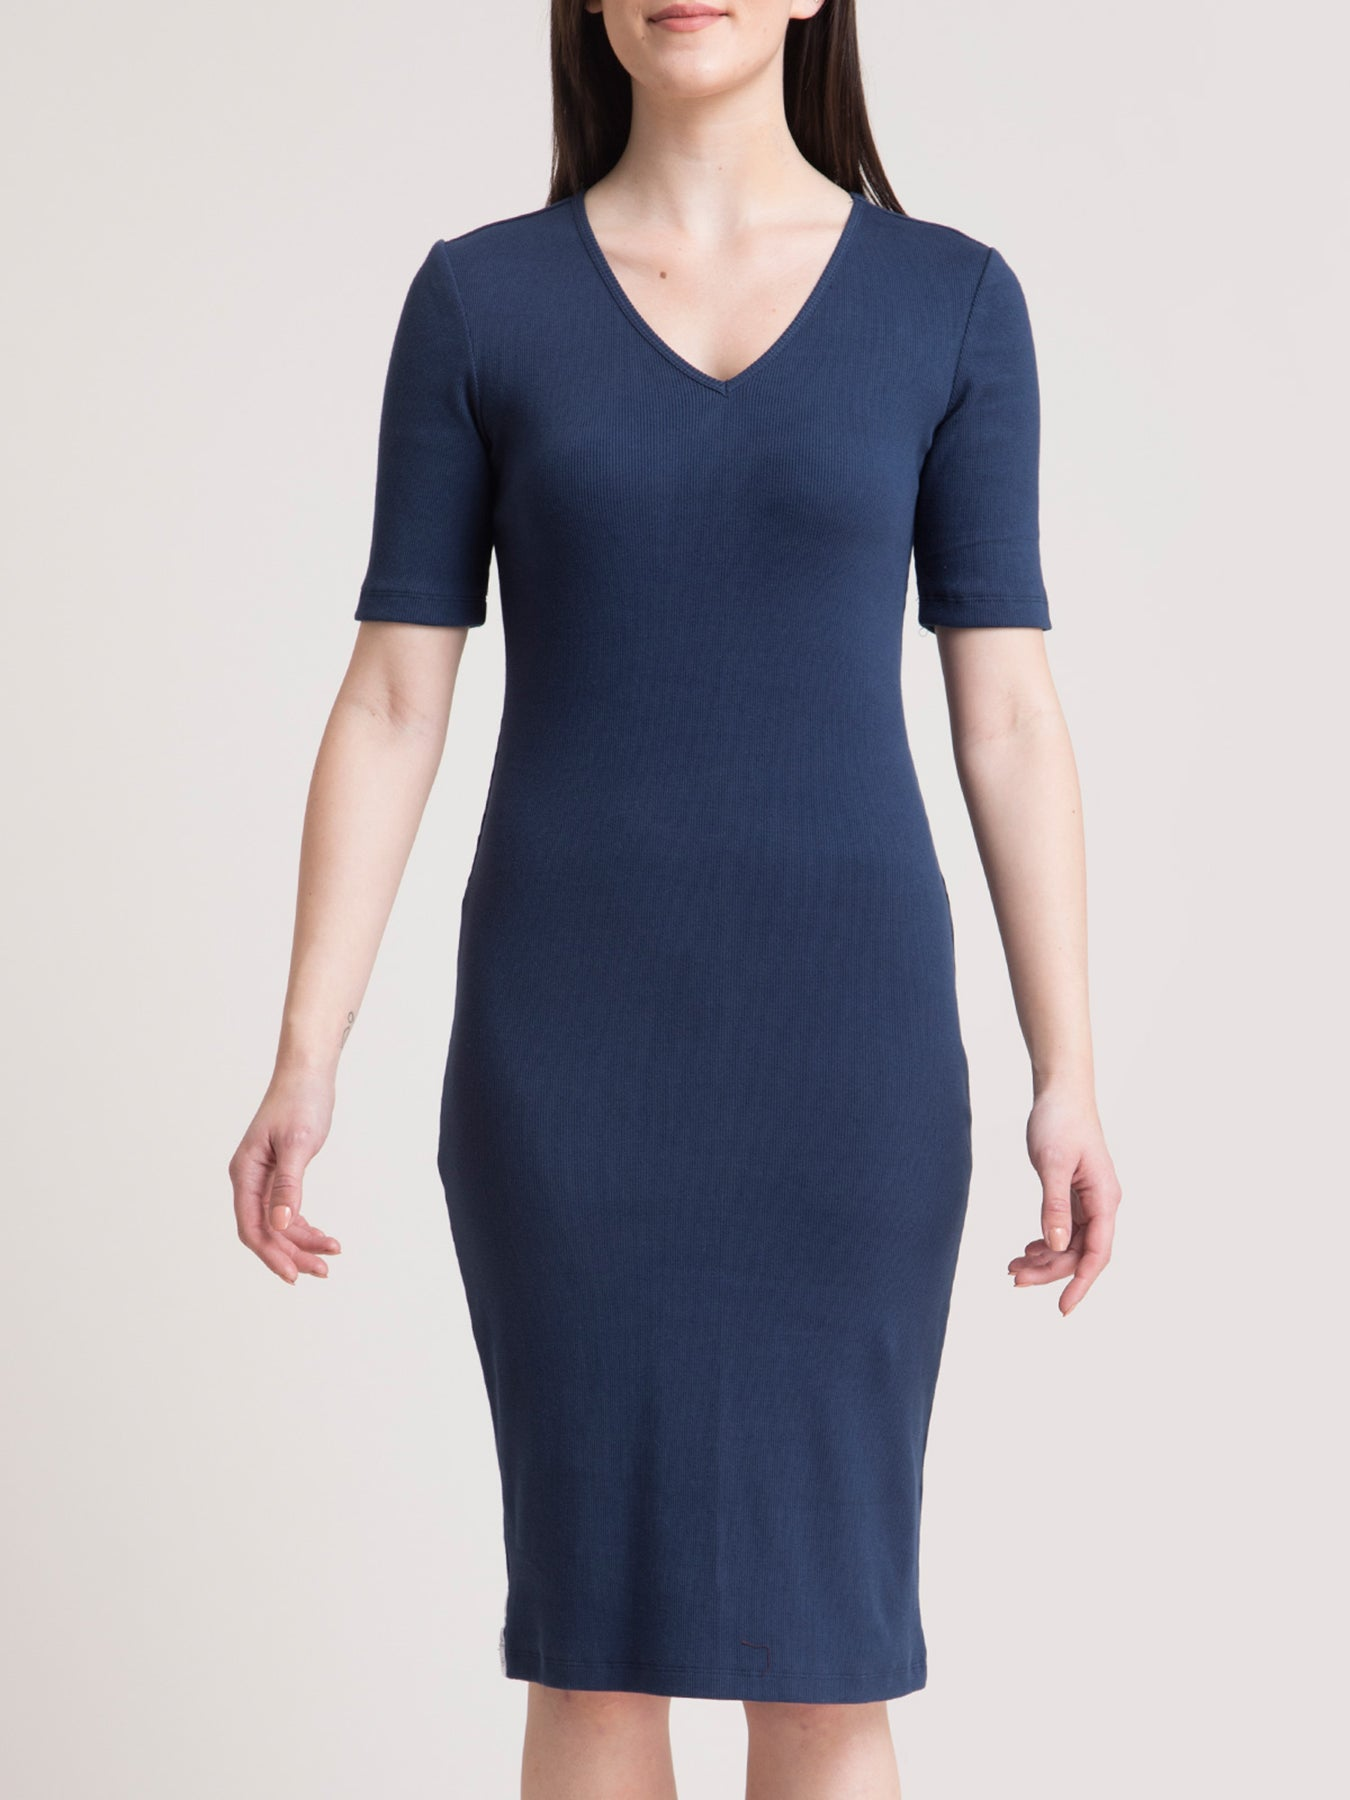 Stretchable V Neck LivIn Dress - Navy Blue